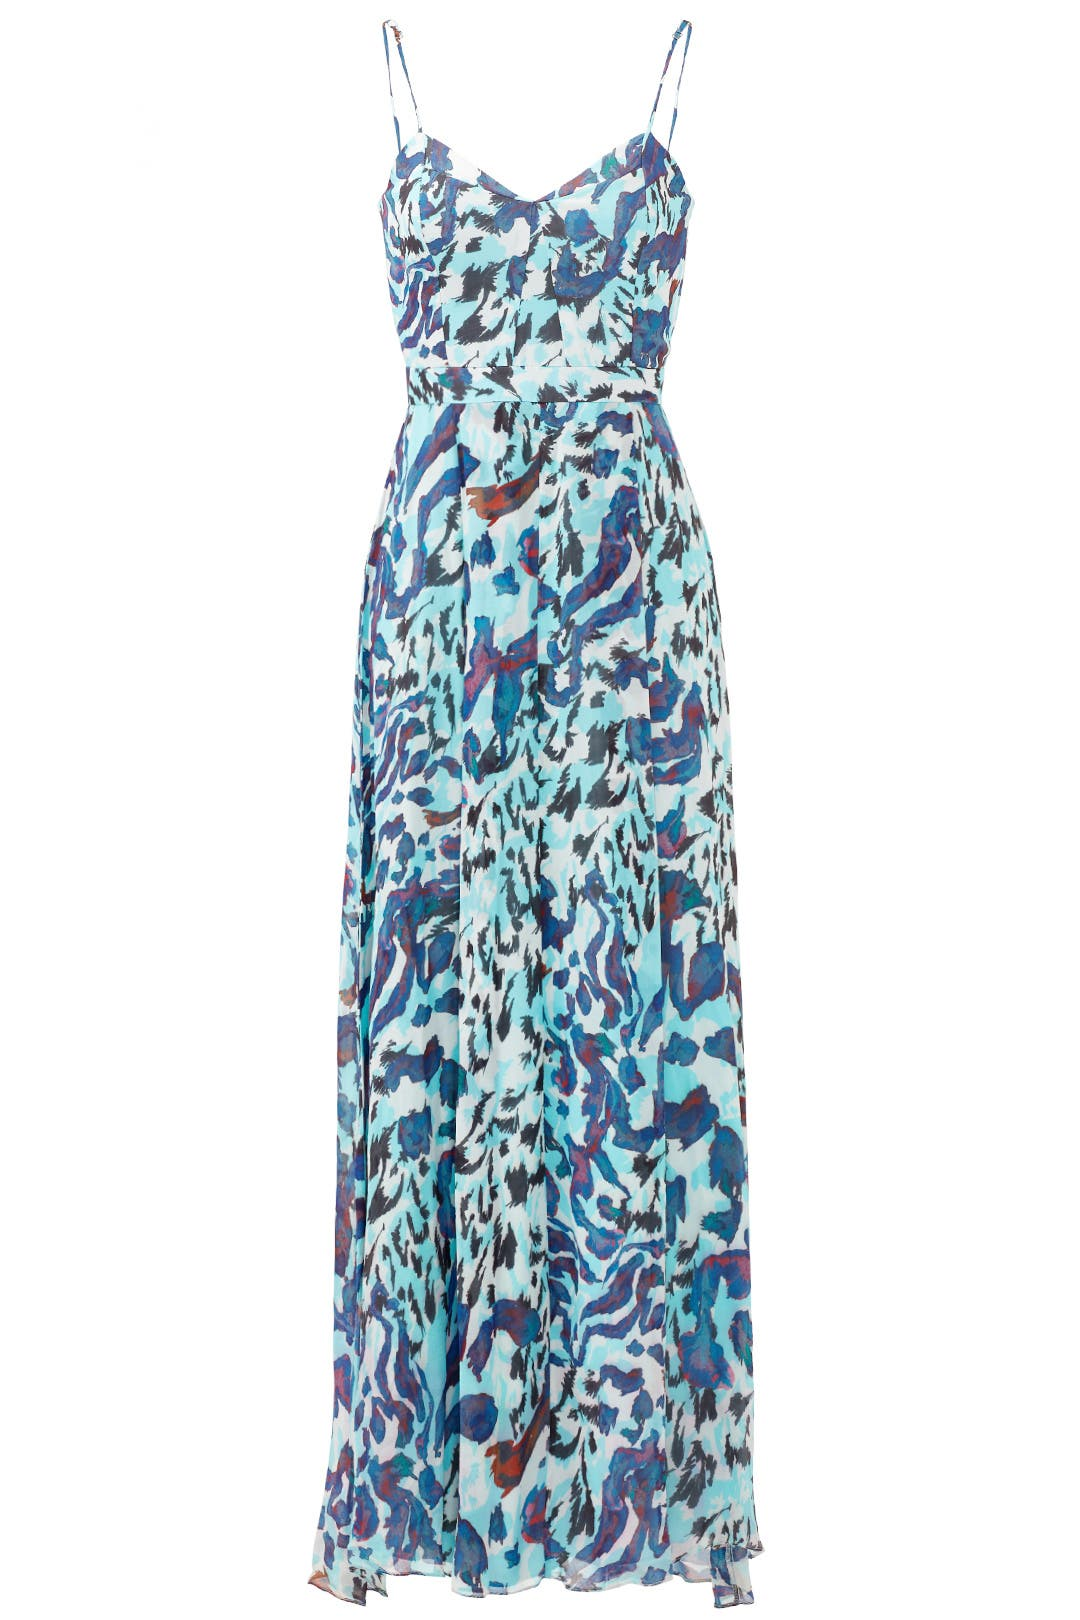 Camo Sea Maxi Dress by Hunter Bell for $70 - $80 | Rent the Runway